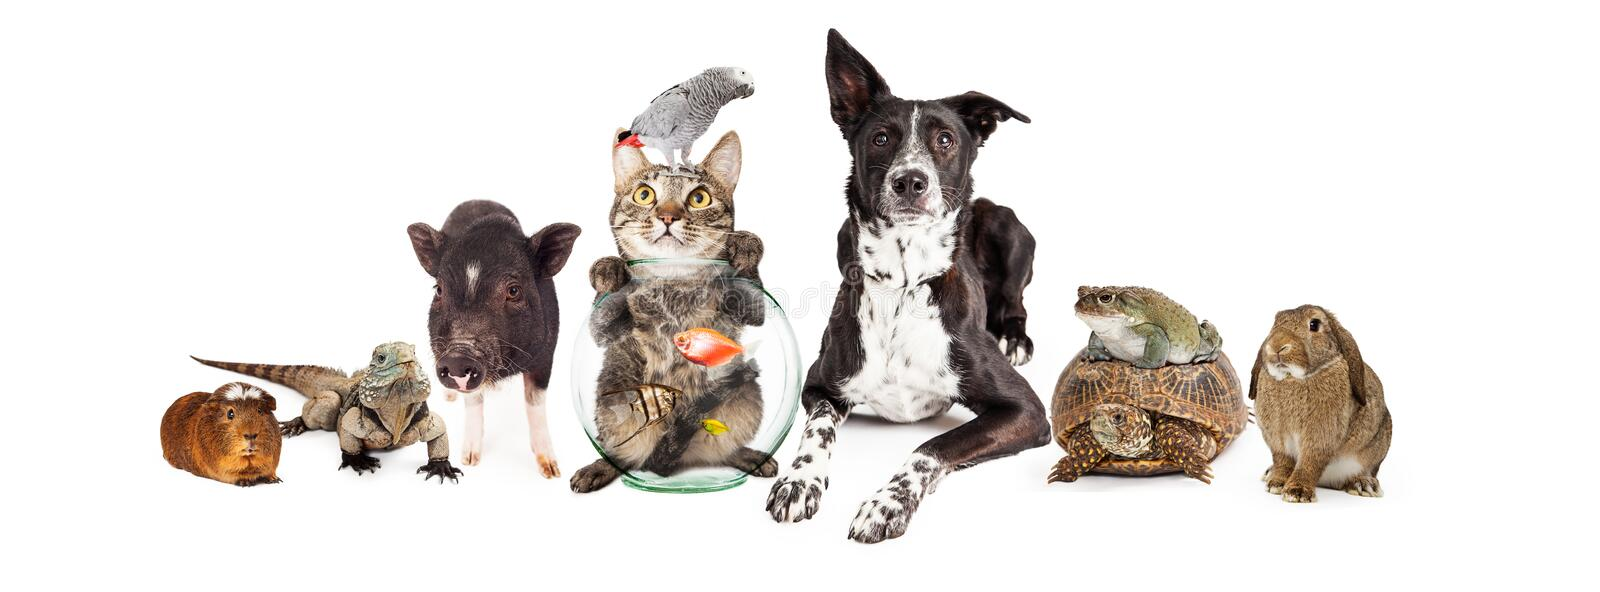 Group of Domestic Pets Sitting Together royalty free stock photo